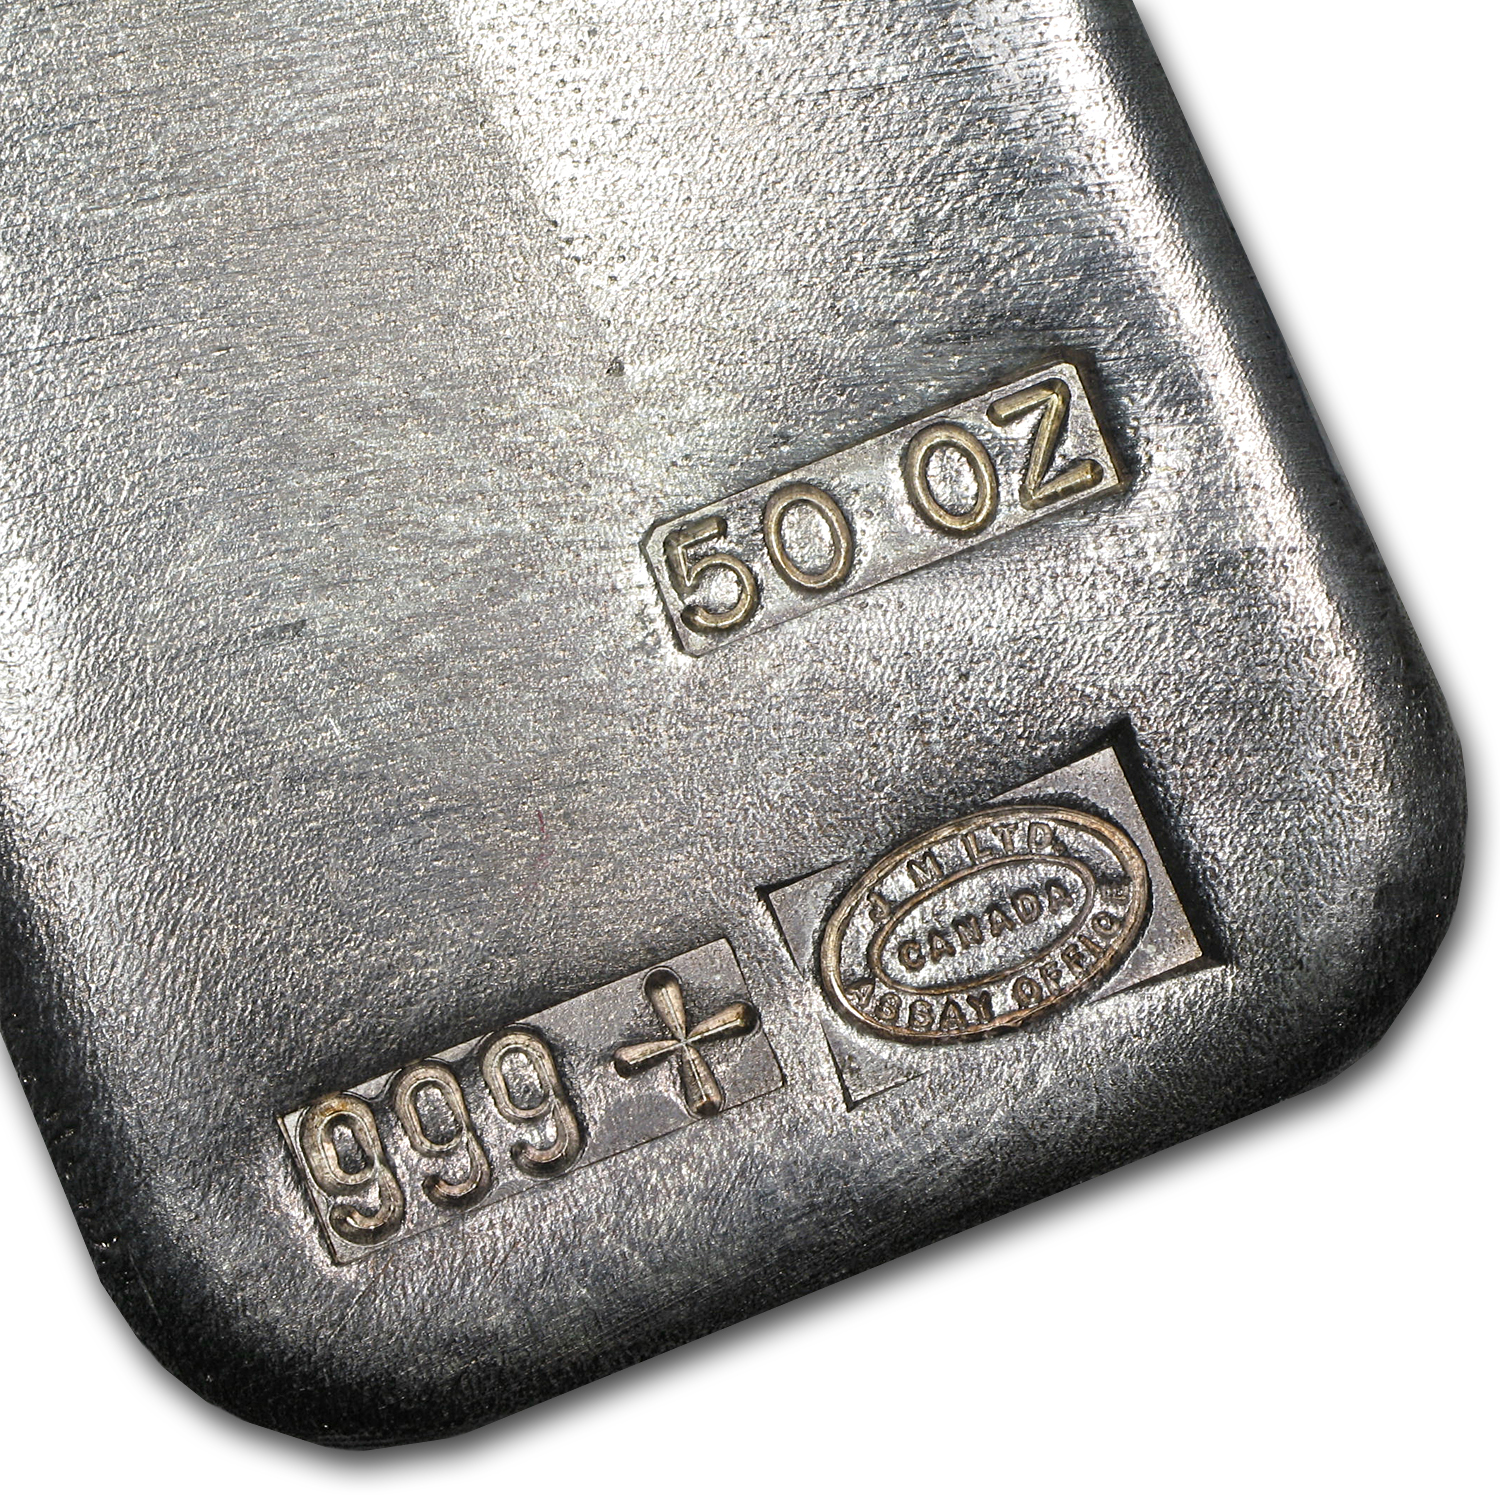 50 oz Silver Bars - Johnson Matthey (Serial #/Canada)